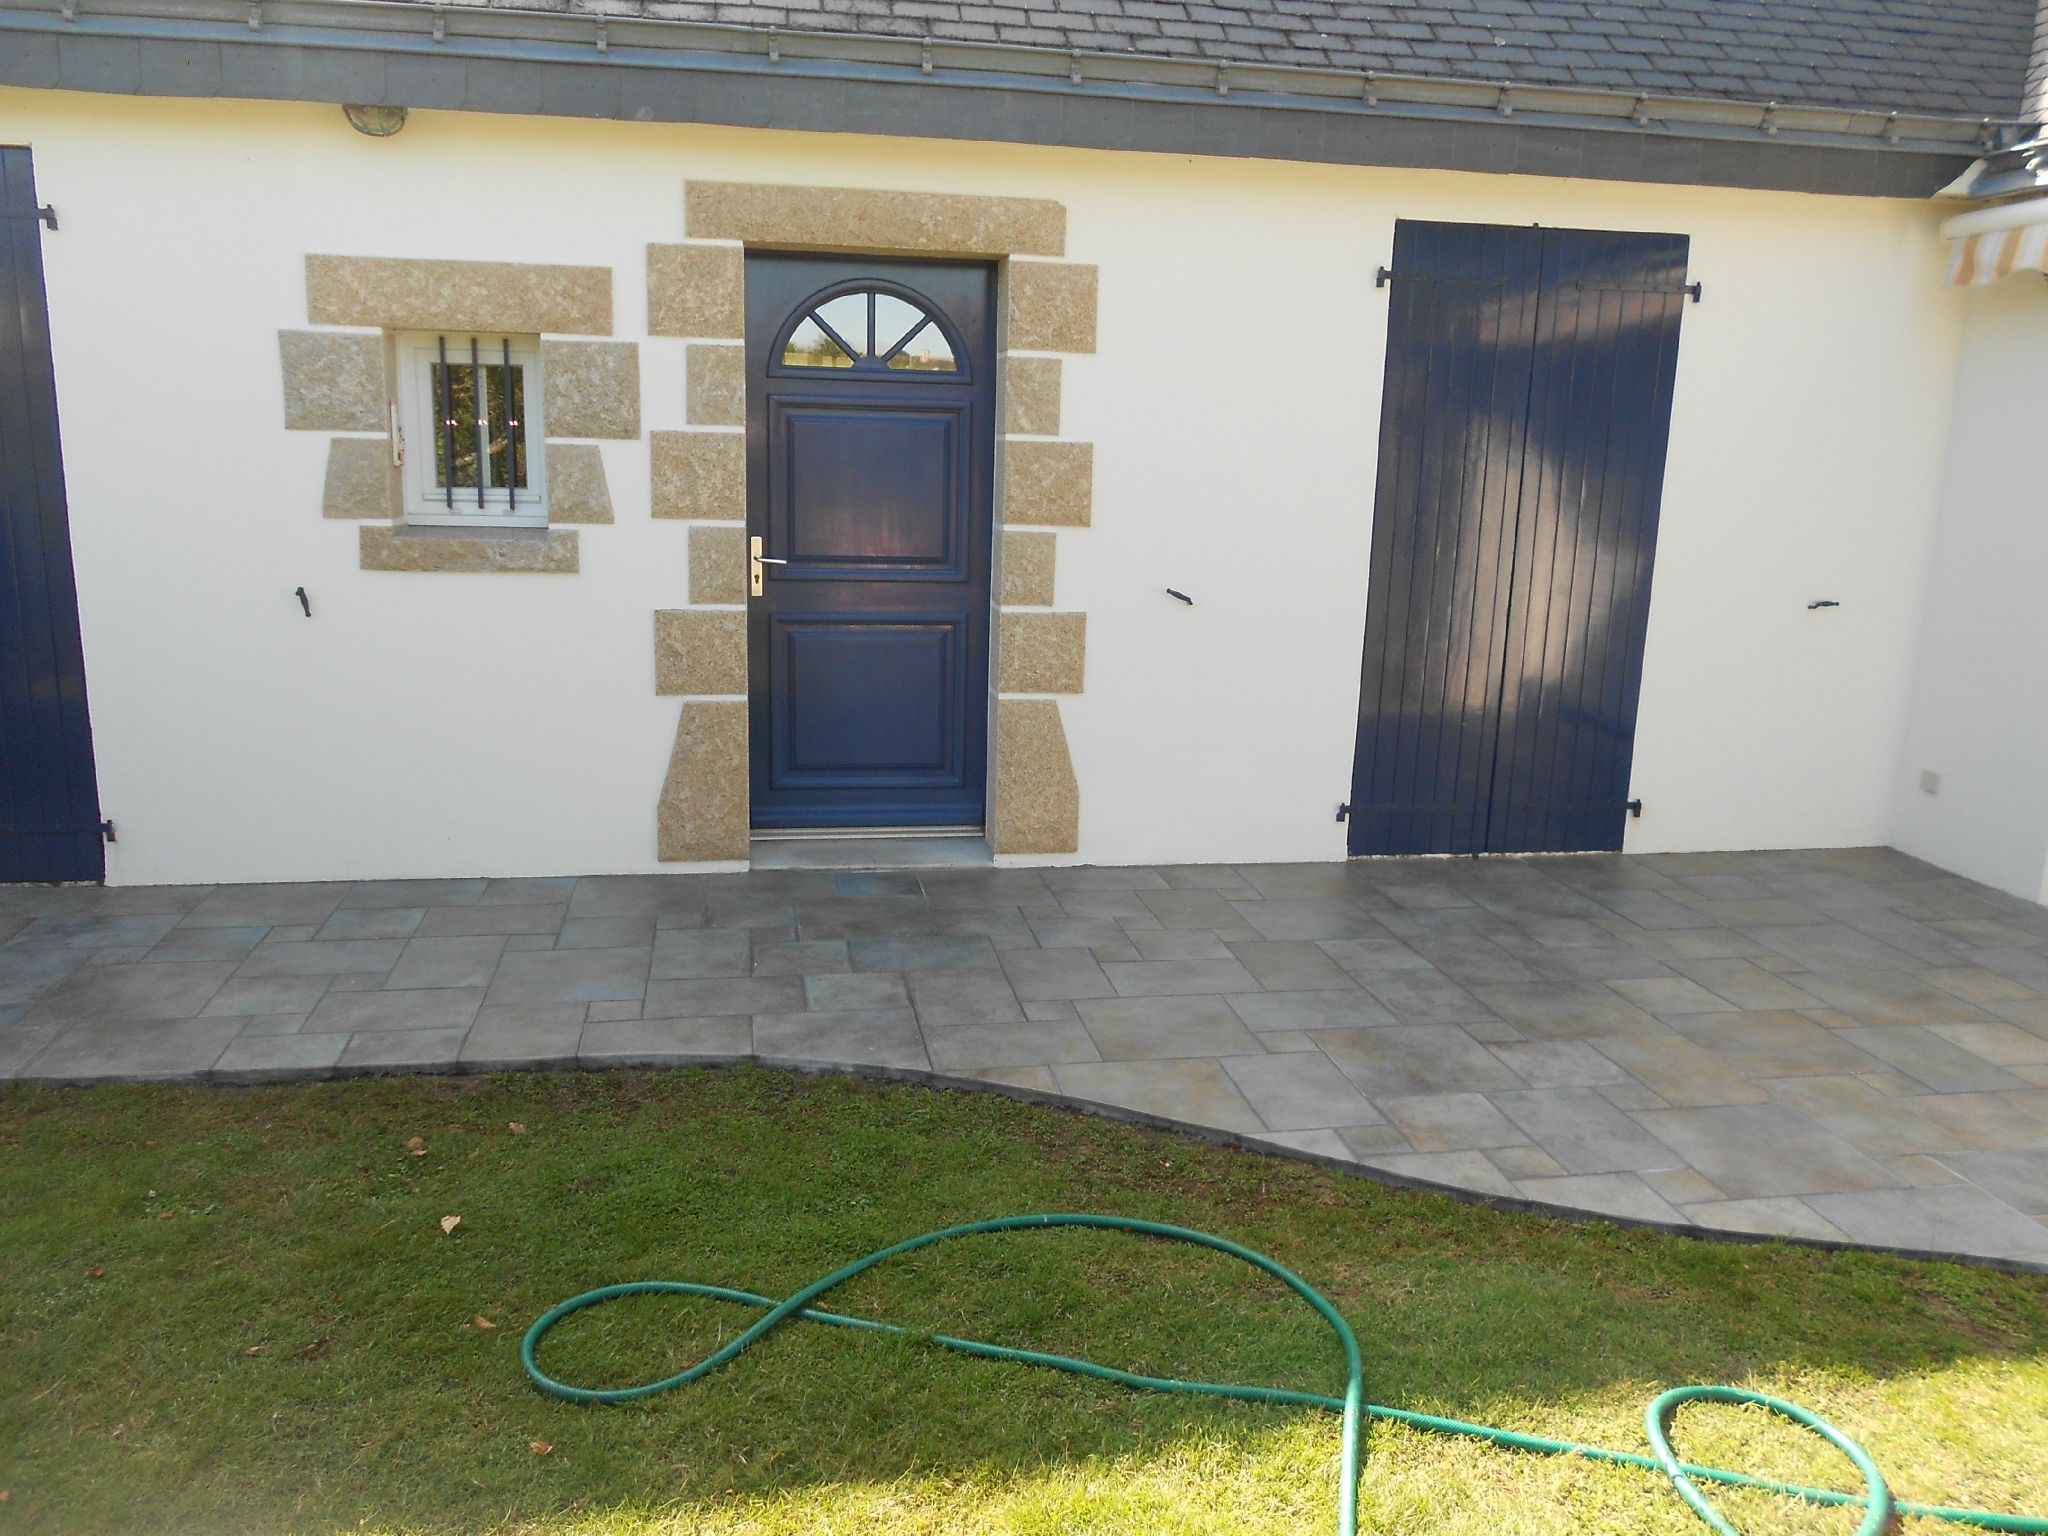 Remplacement ancien dallage par du carrelage en 4 formats for Pose carrelage 4 formats